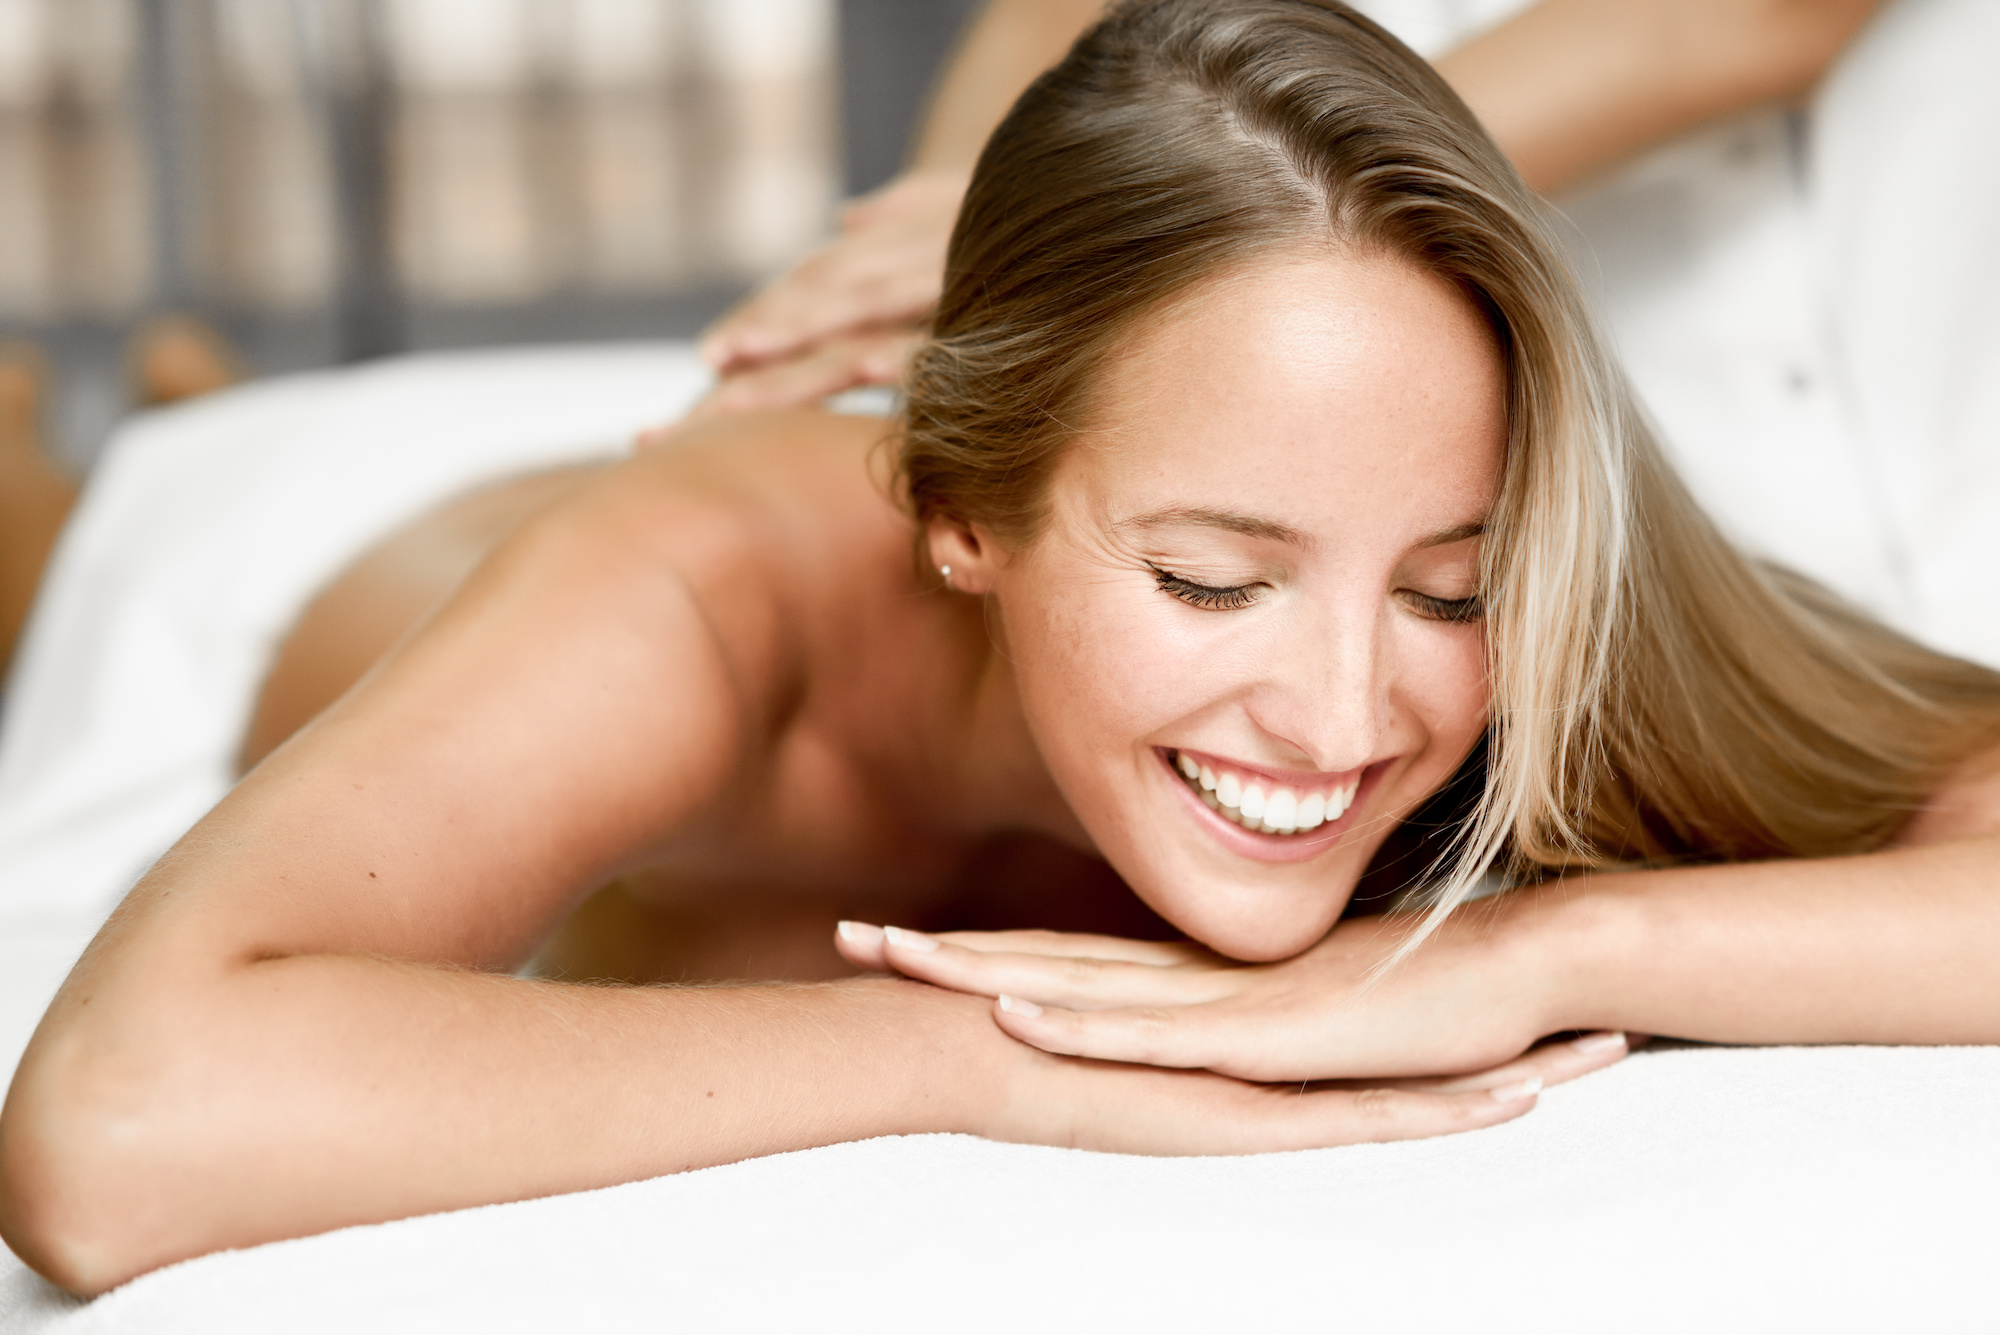 Young blond woman having massage in the spa salon. Massage and body care. Body massage treatment. Smiling female.